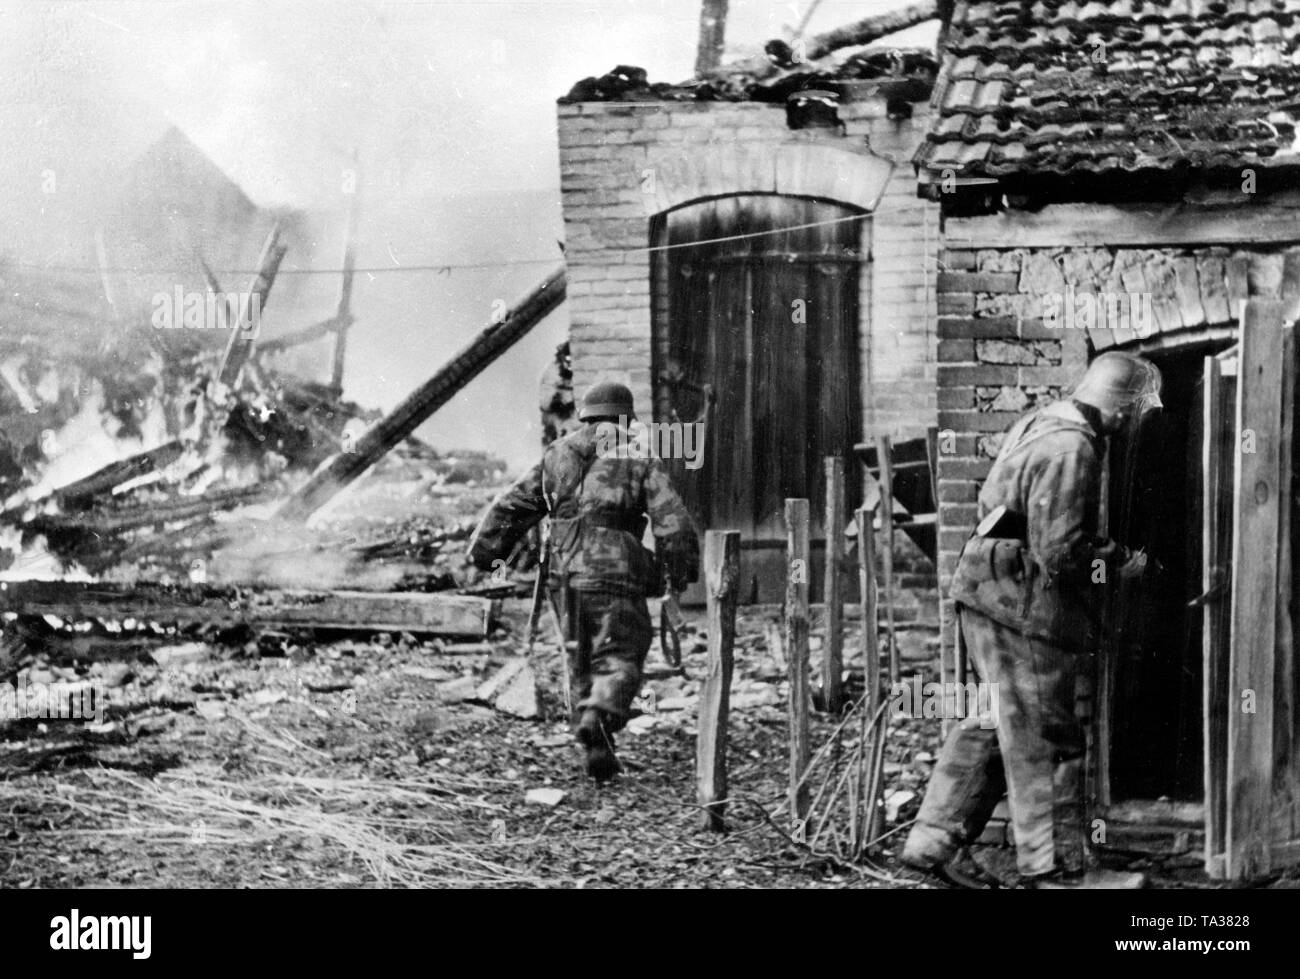 Marines of the Armed Forces search houses in a reconquered village for remaining Red Army soldiers. Stock Photo